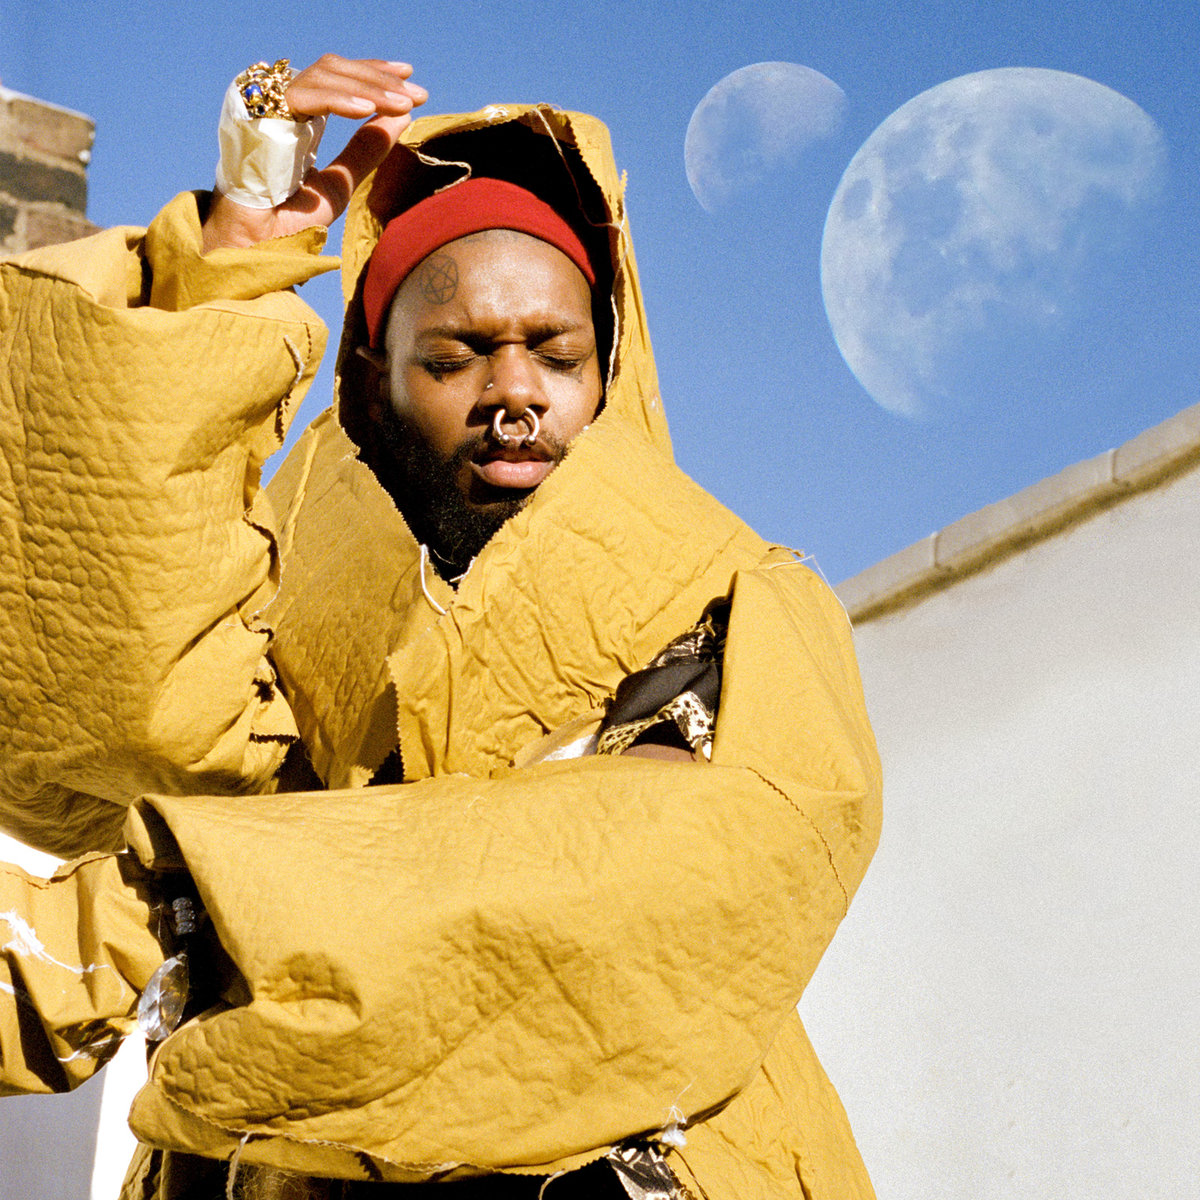 Album cover for  soil  by serpentwithfeet. Image via serpentwithfeet Bandcamp